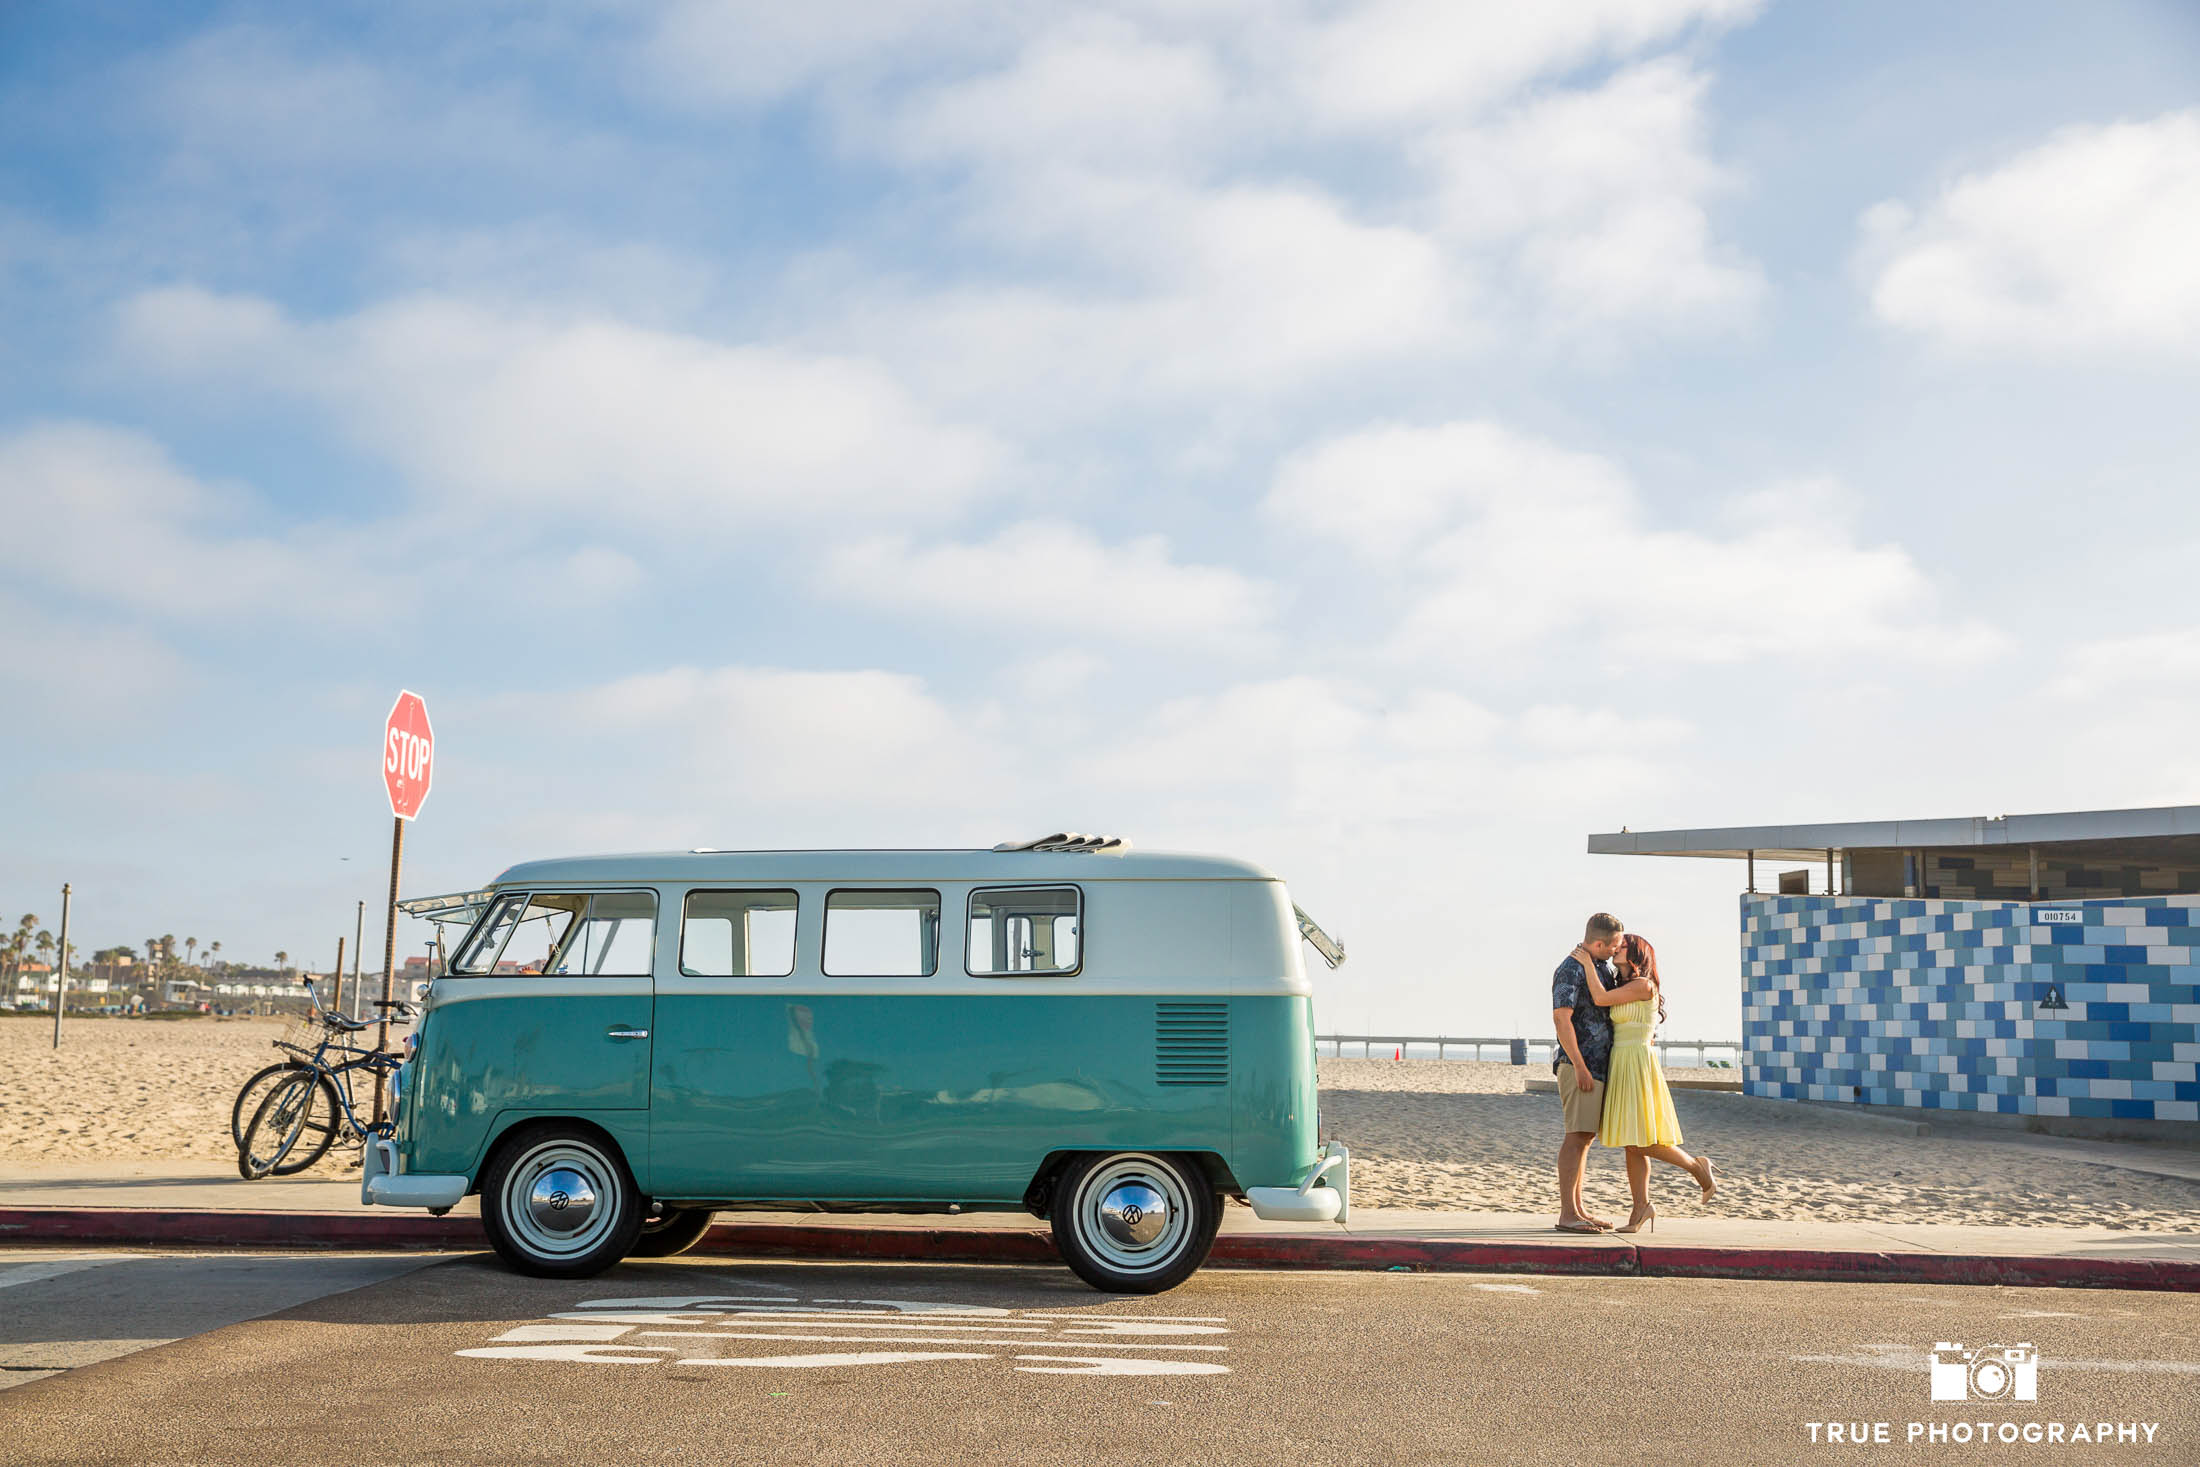 Engaged couple embrace and kiss next to vintage Volkswagen Bus at beach